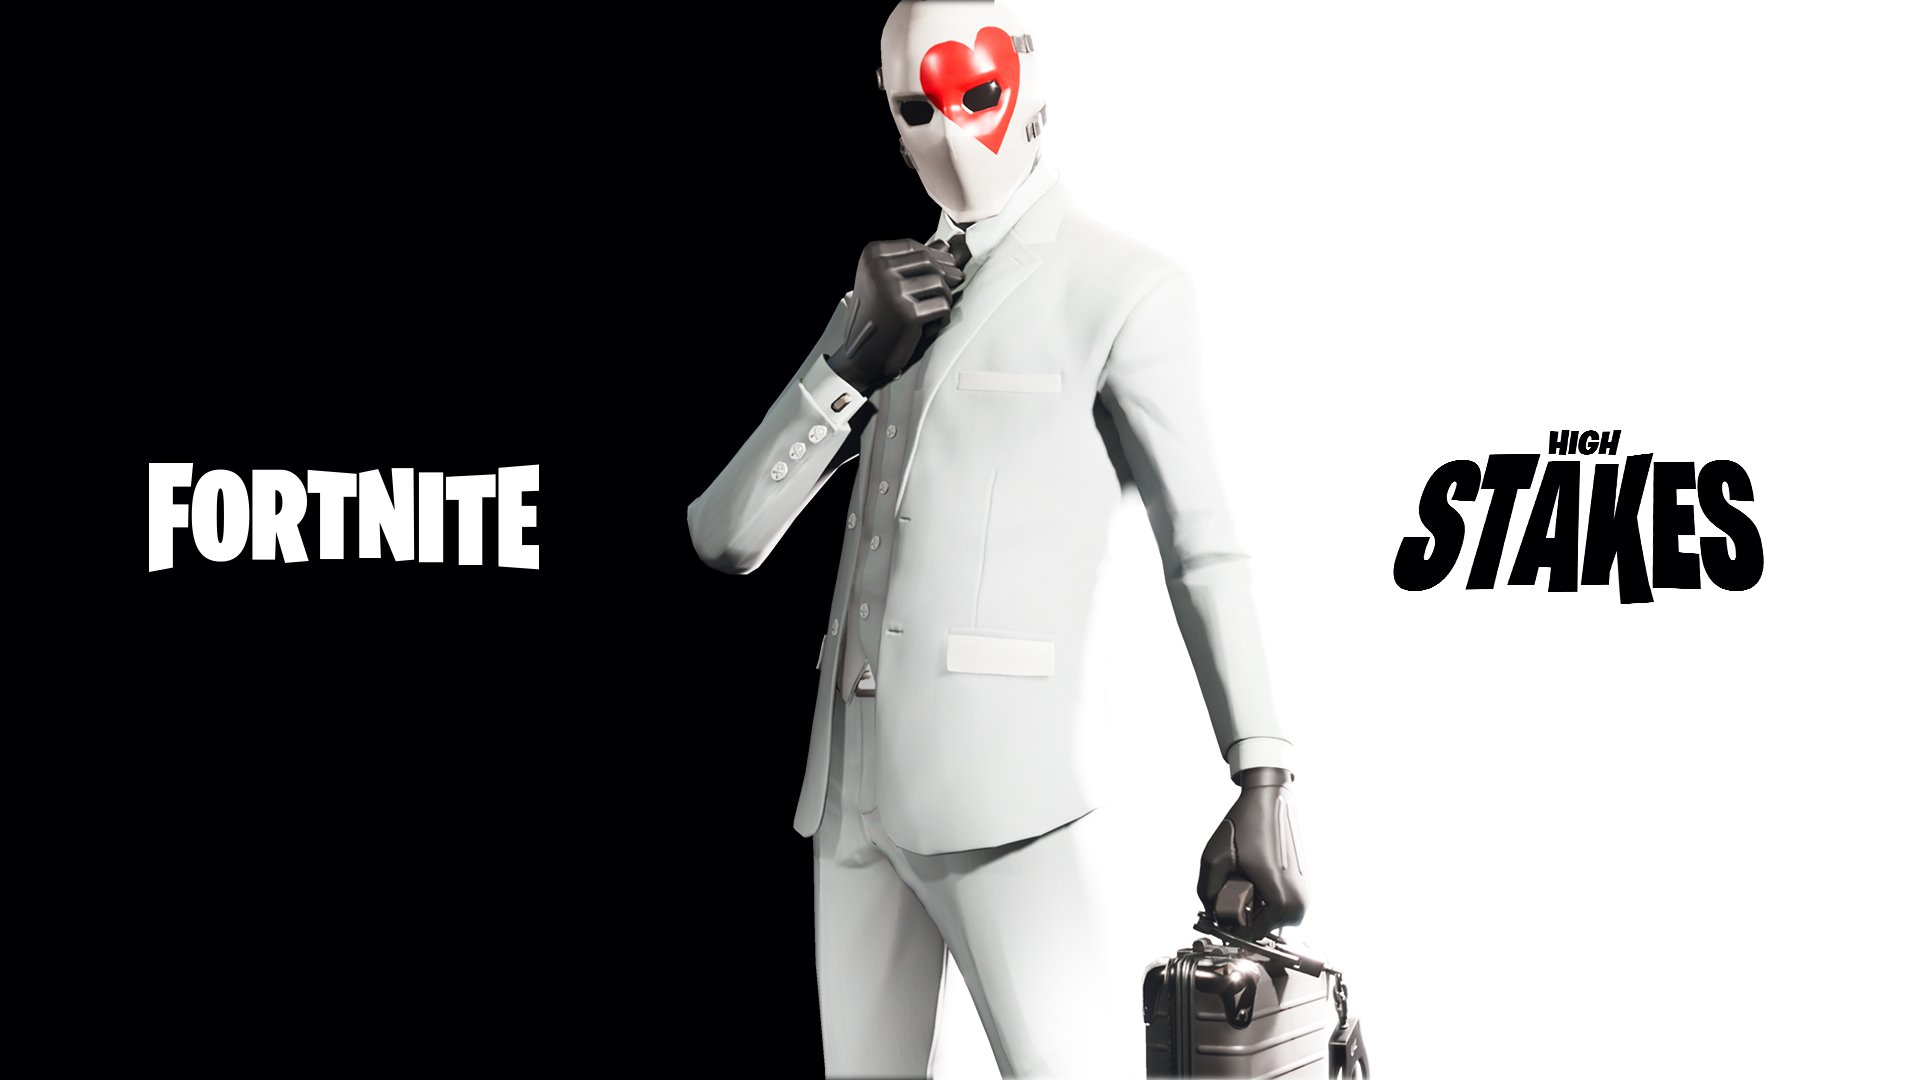 New Fortnite High Stakes Event Gets Announced